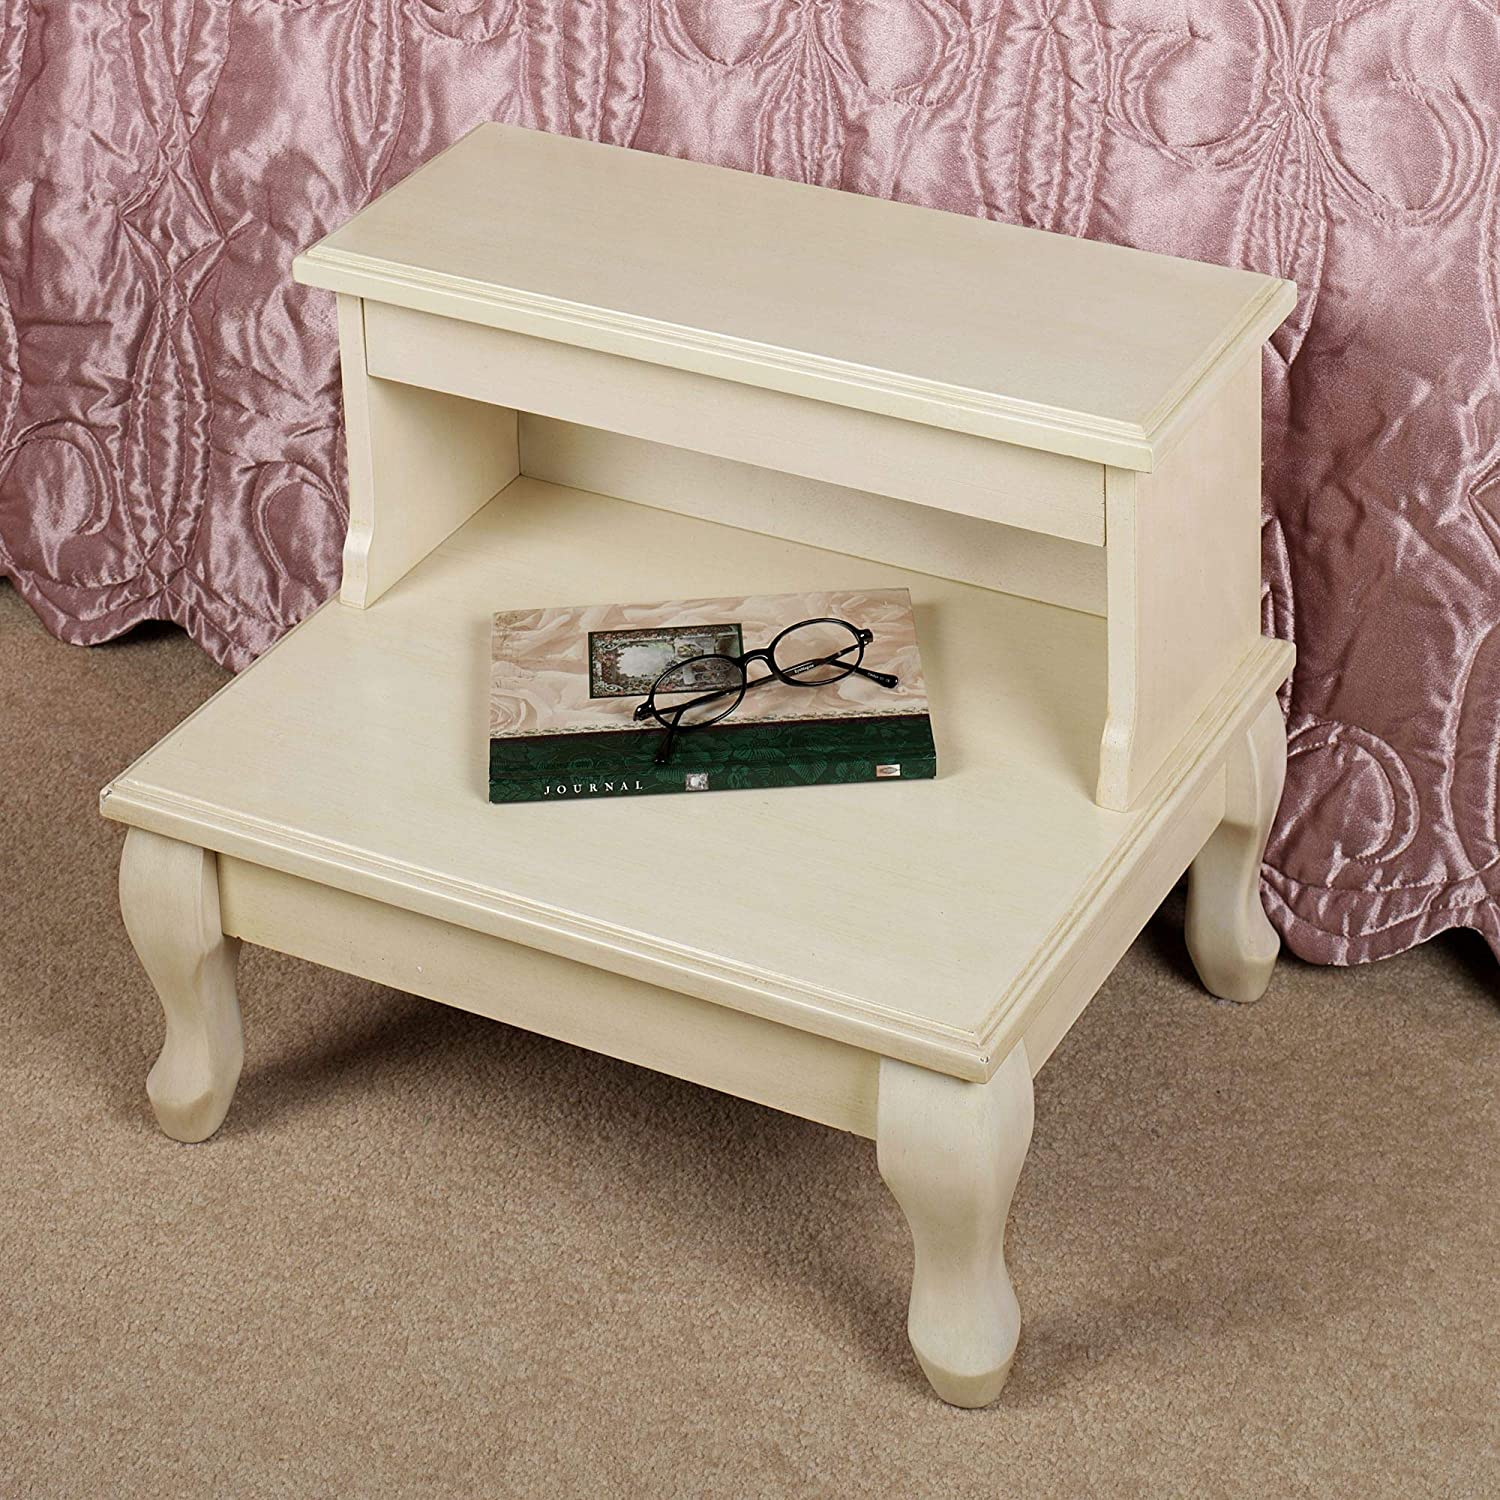 Cessilee Wooden Bed Portland Mall Steps with Max 64% OFF Storage Whitewas - High 16 Inches